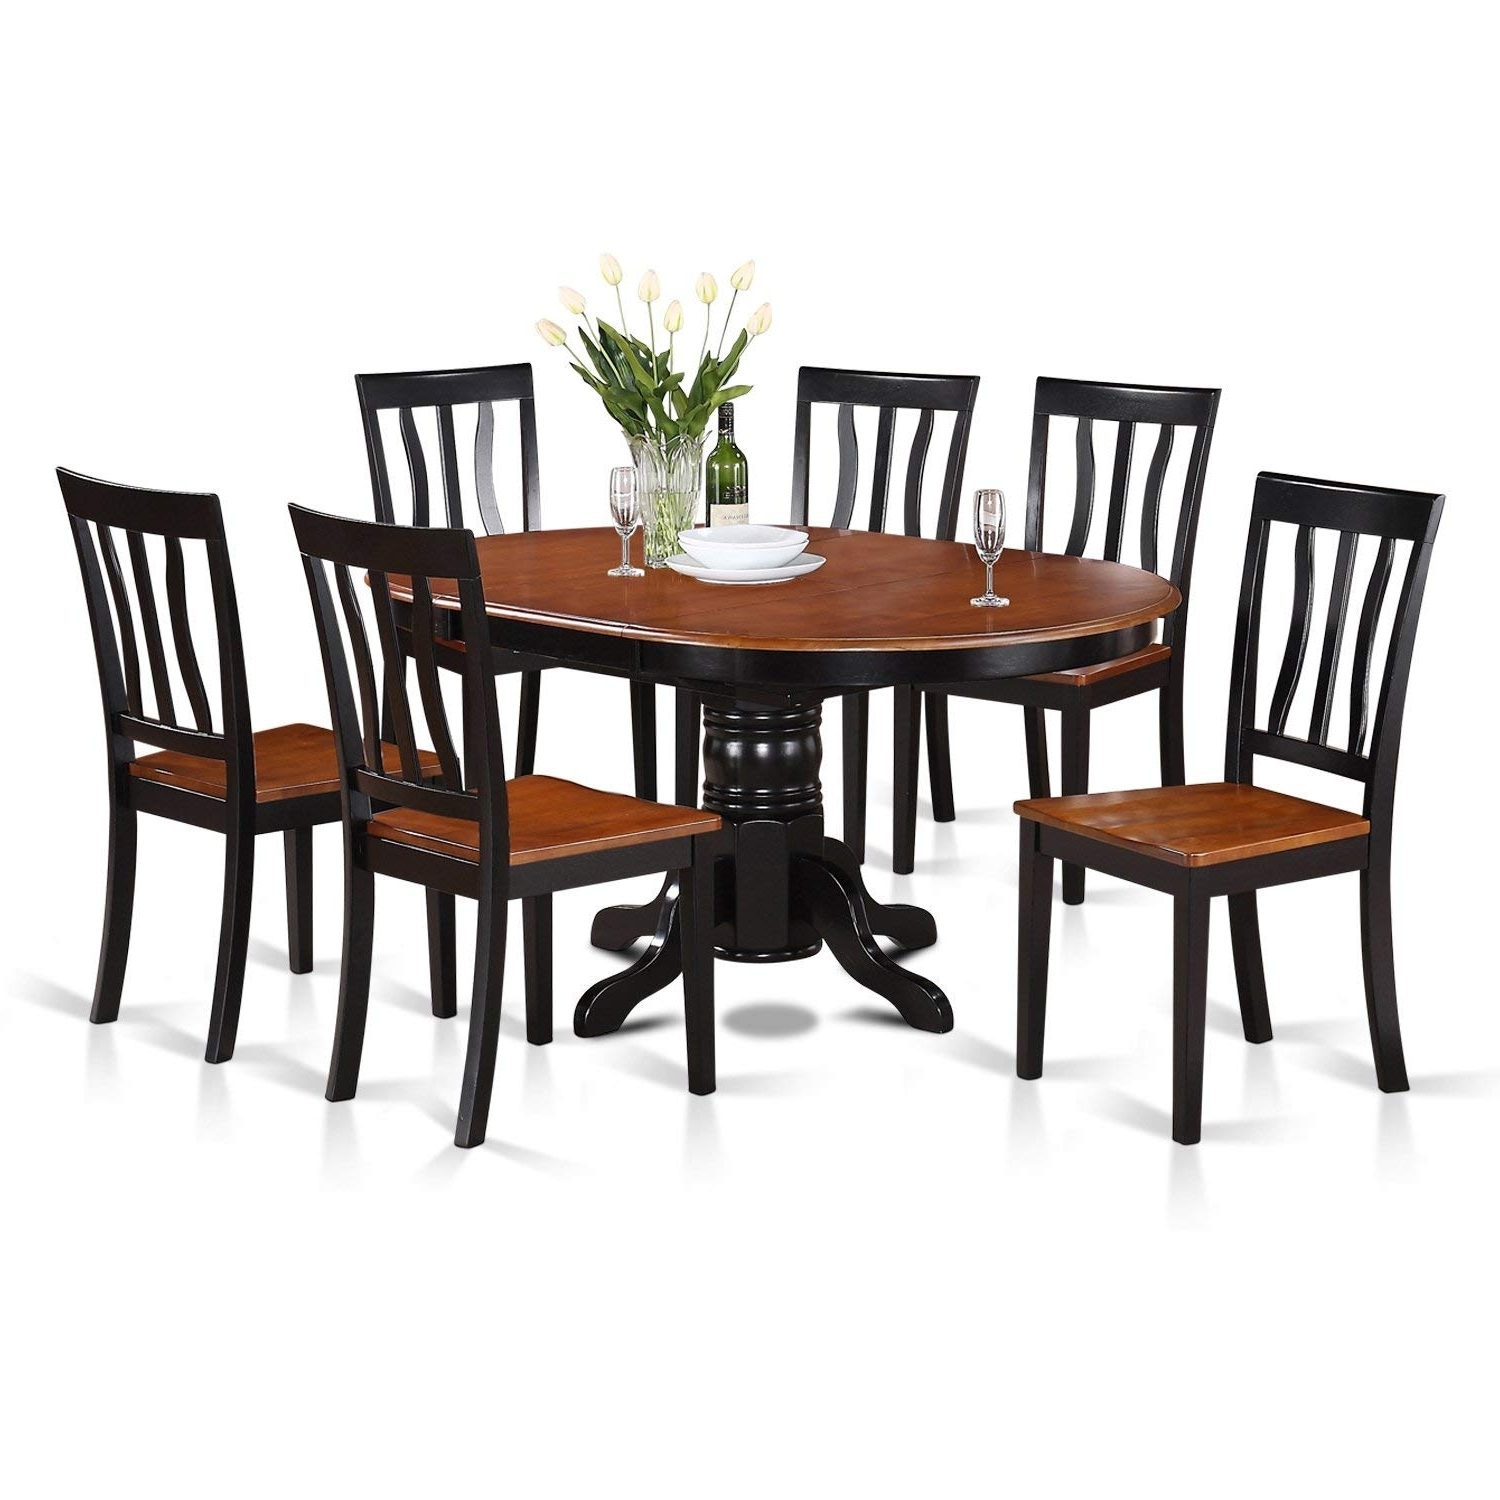 Best And Newest Amazon: East West Furniture Avat7 Blk W 7 Piece Dining Table Set Inside Cheap Dining Tables Sets (View 2 of 25)